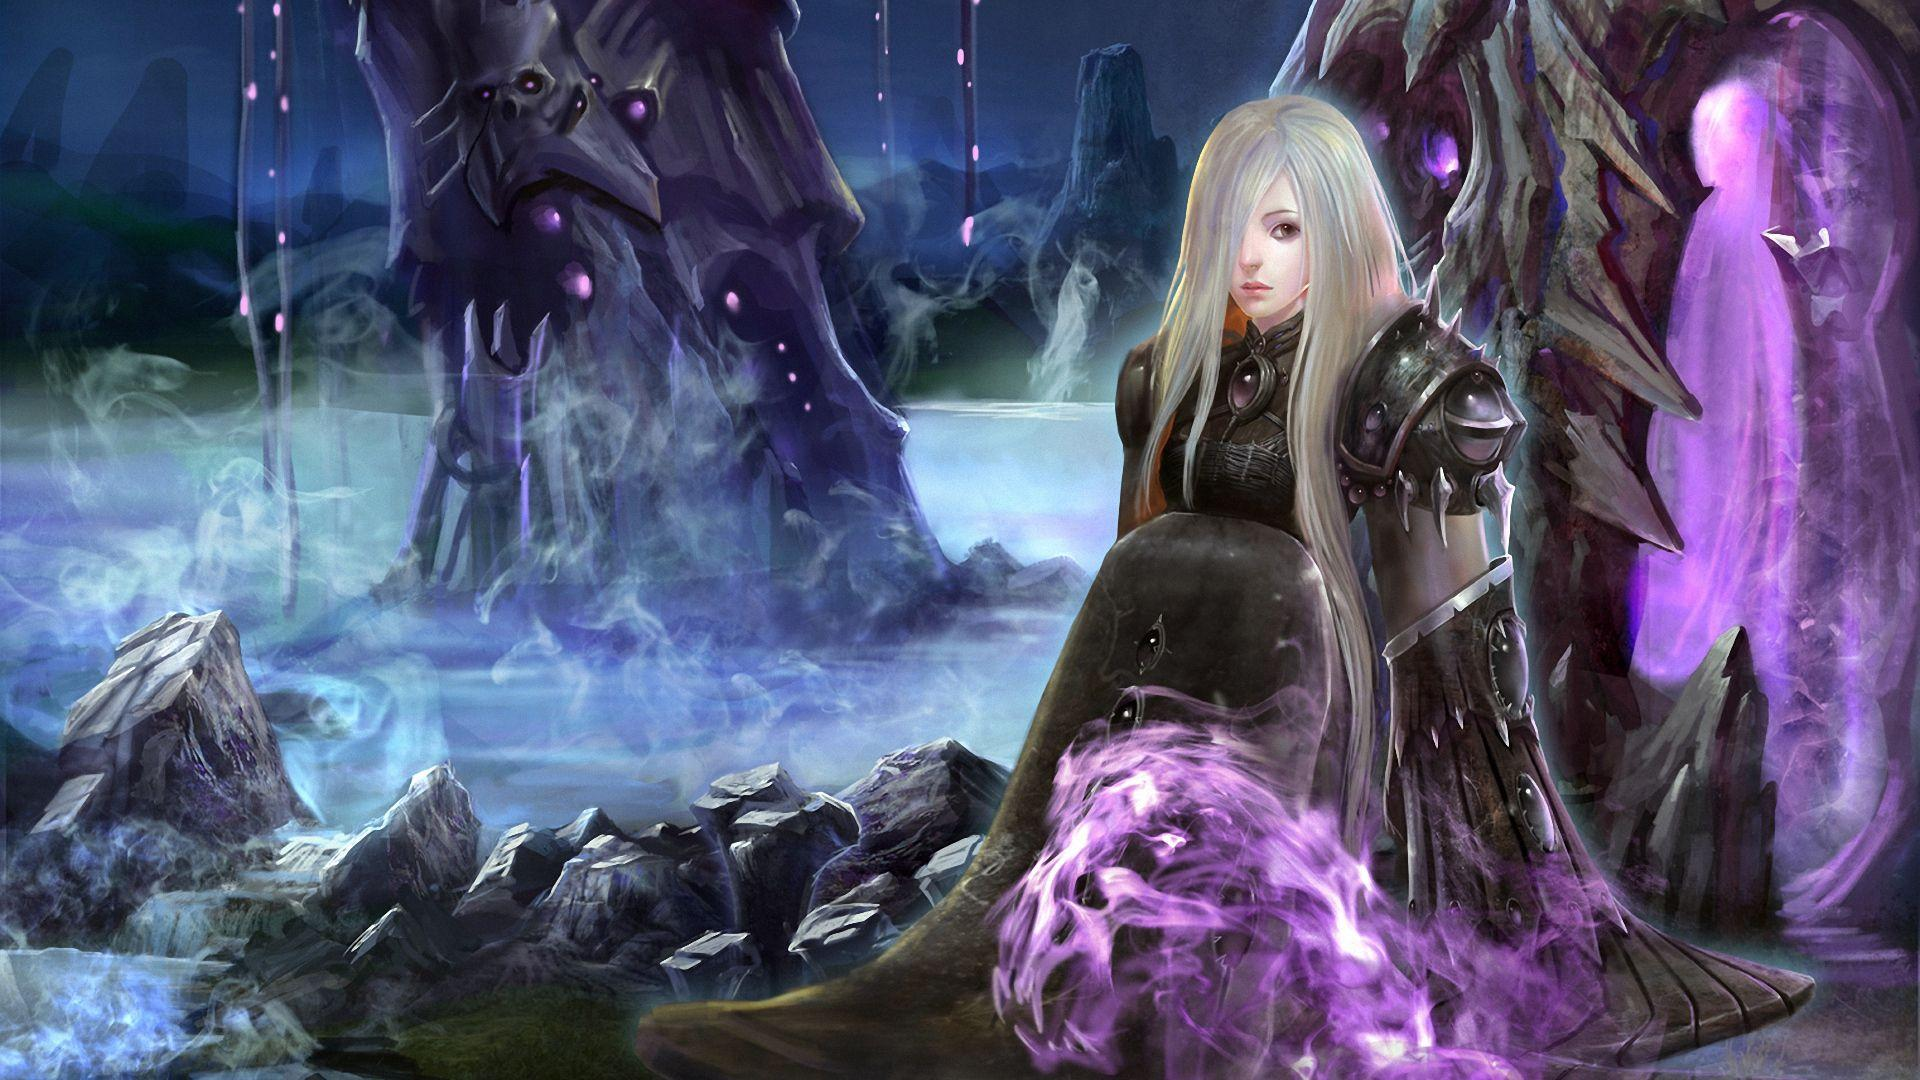 Download wallpapers 1920x1080 wow, shadow priest, art full hd, hdtv